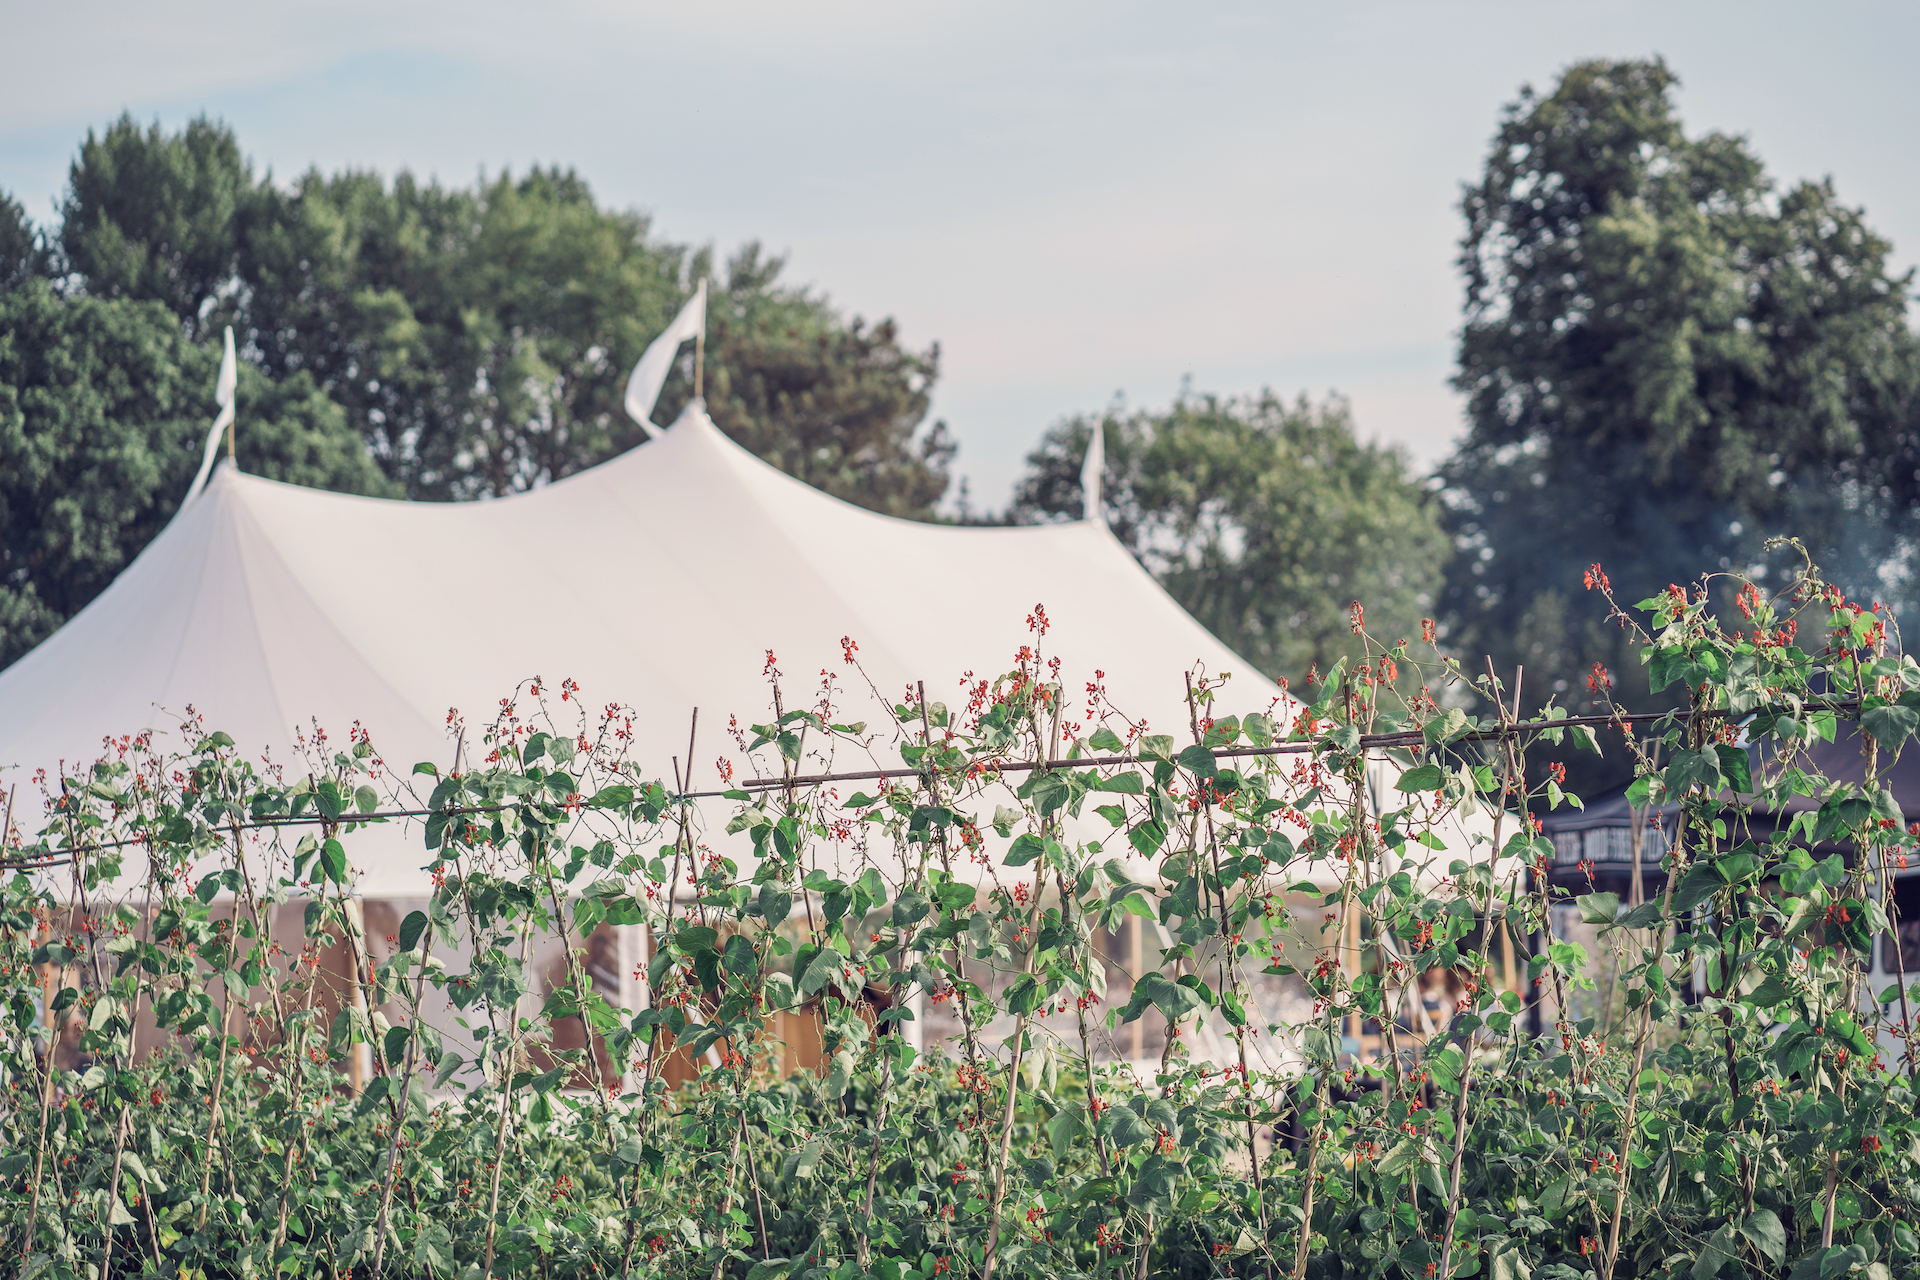 PapaKåta couple Louise & Alex's Sperry Wedding at Elford Hall Garden, Staffordshire captured by Jessica Raphael Photography- Sperry Tent Garden Wedding